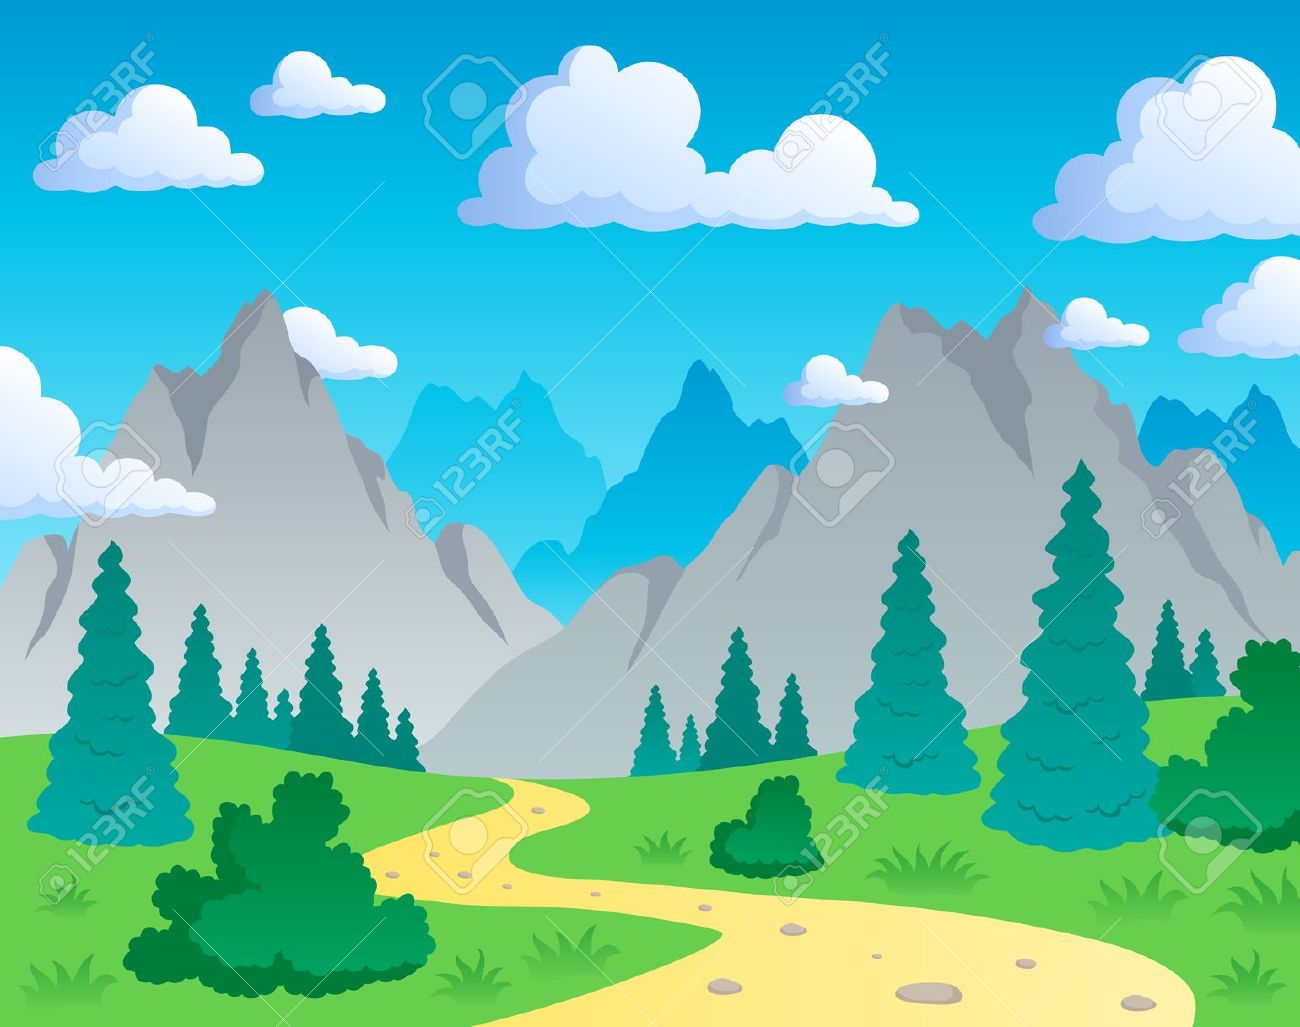 Mountains and valleys clipart.